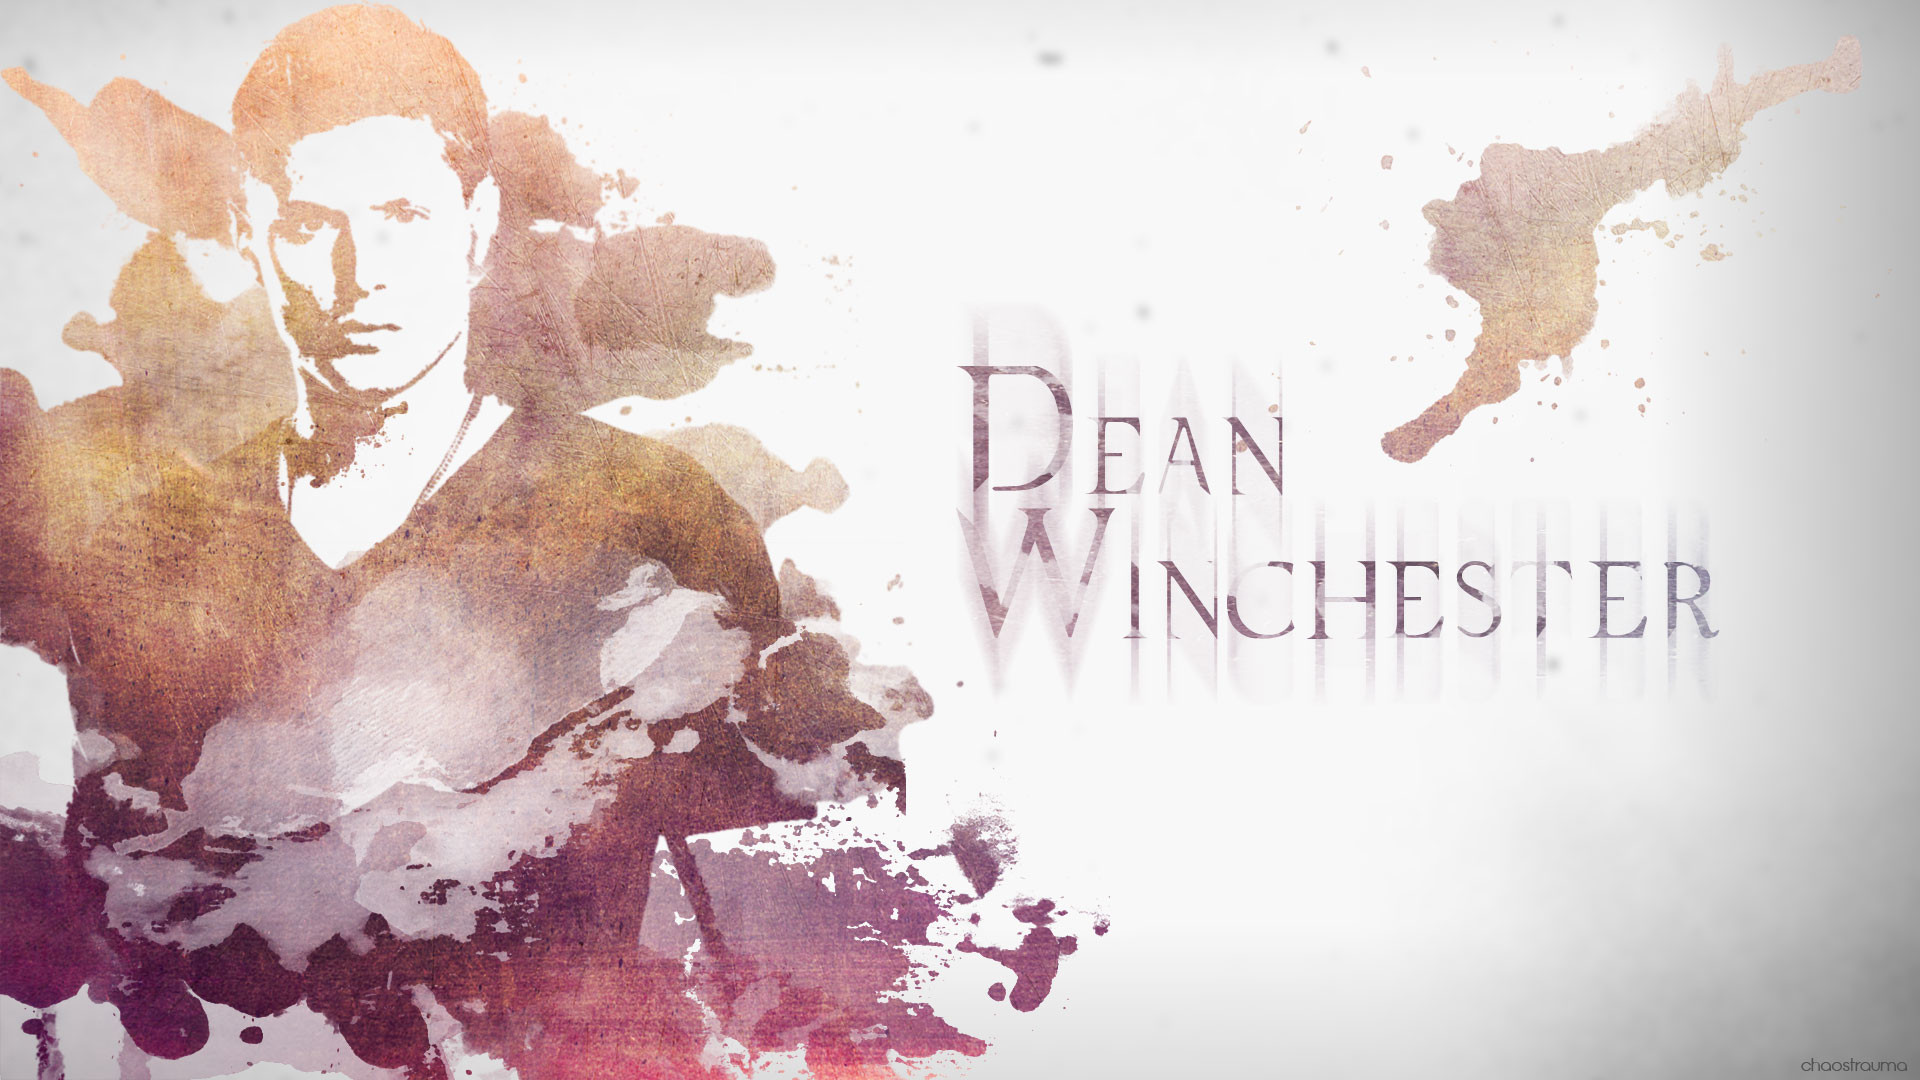 1920x1080 Supernatural Wallpaper - Dean Winchester by chaostrauma Supernatural  Wallpaper - Dean Winchester by chaostrauma